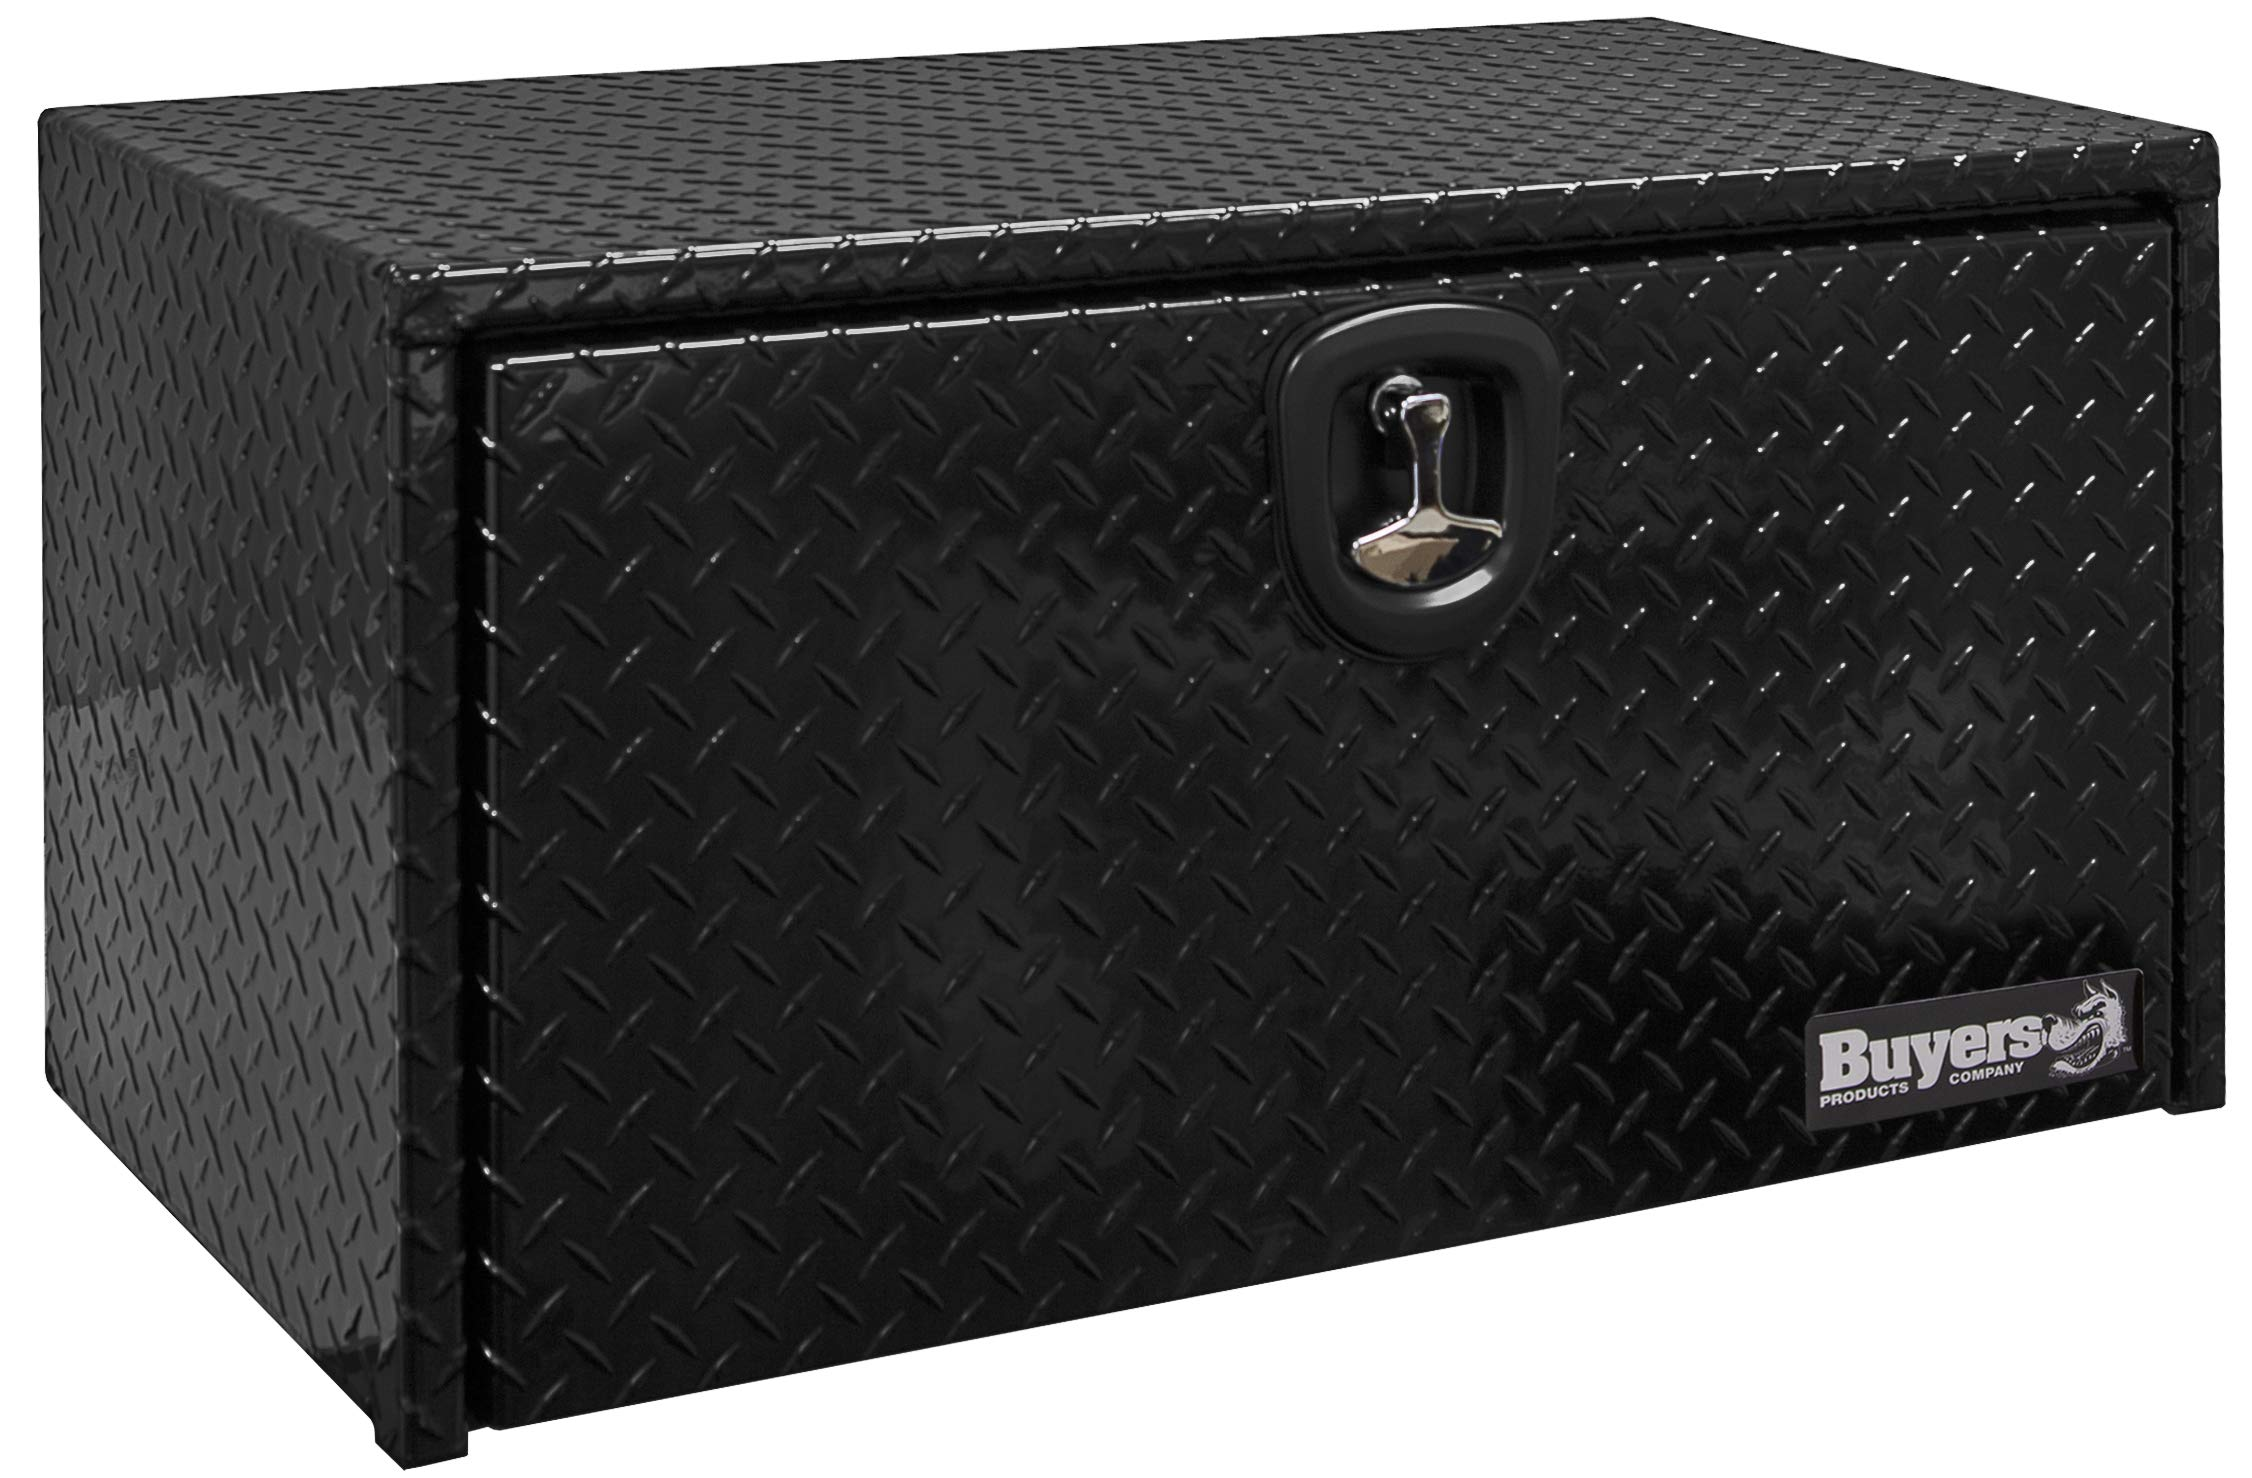 Buyers Products 1725103 Toolbox (Aluminum, 18X18X30, BLK PDR Coat) by Buyers Products